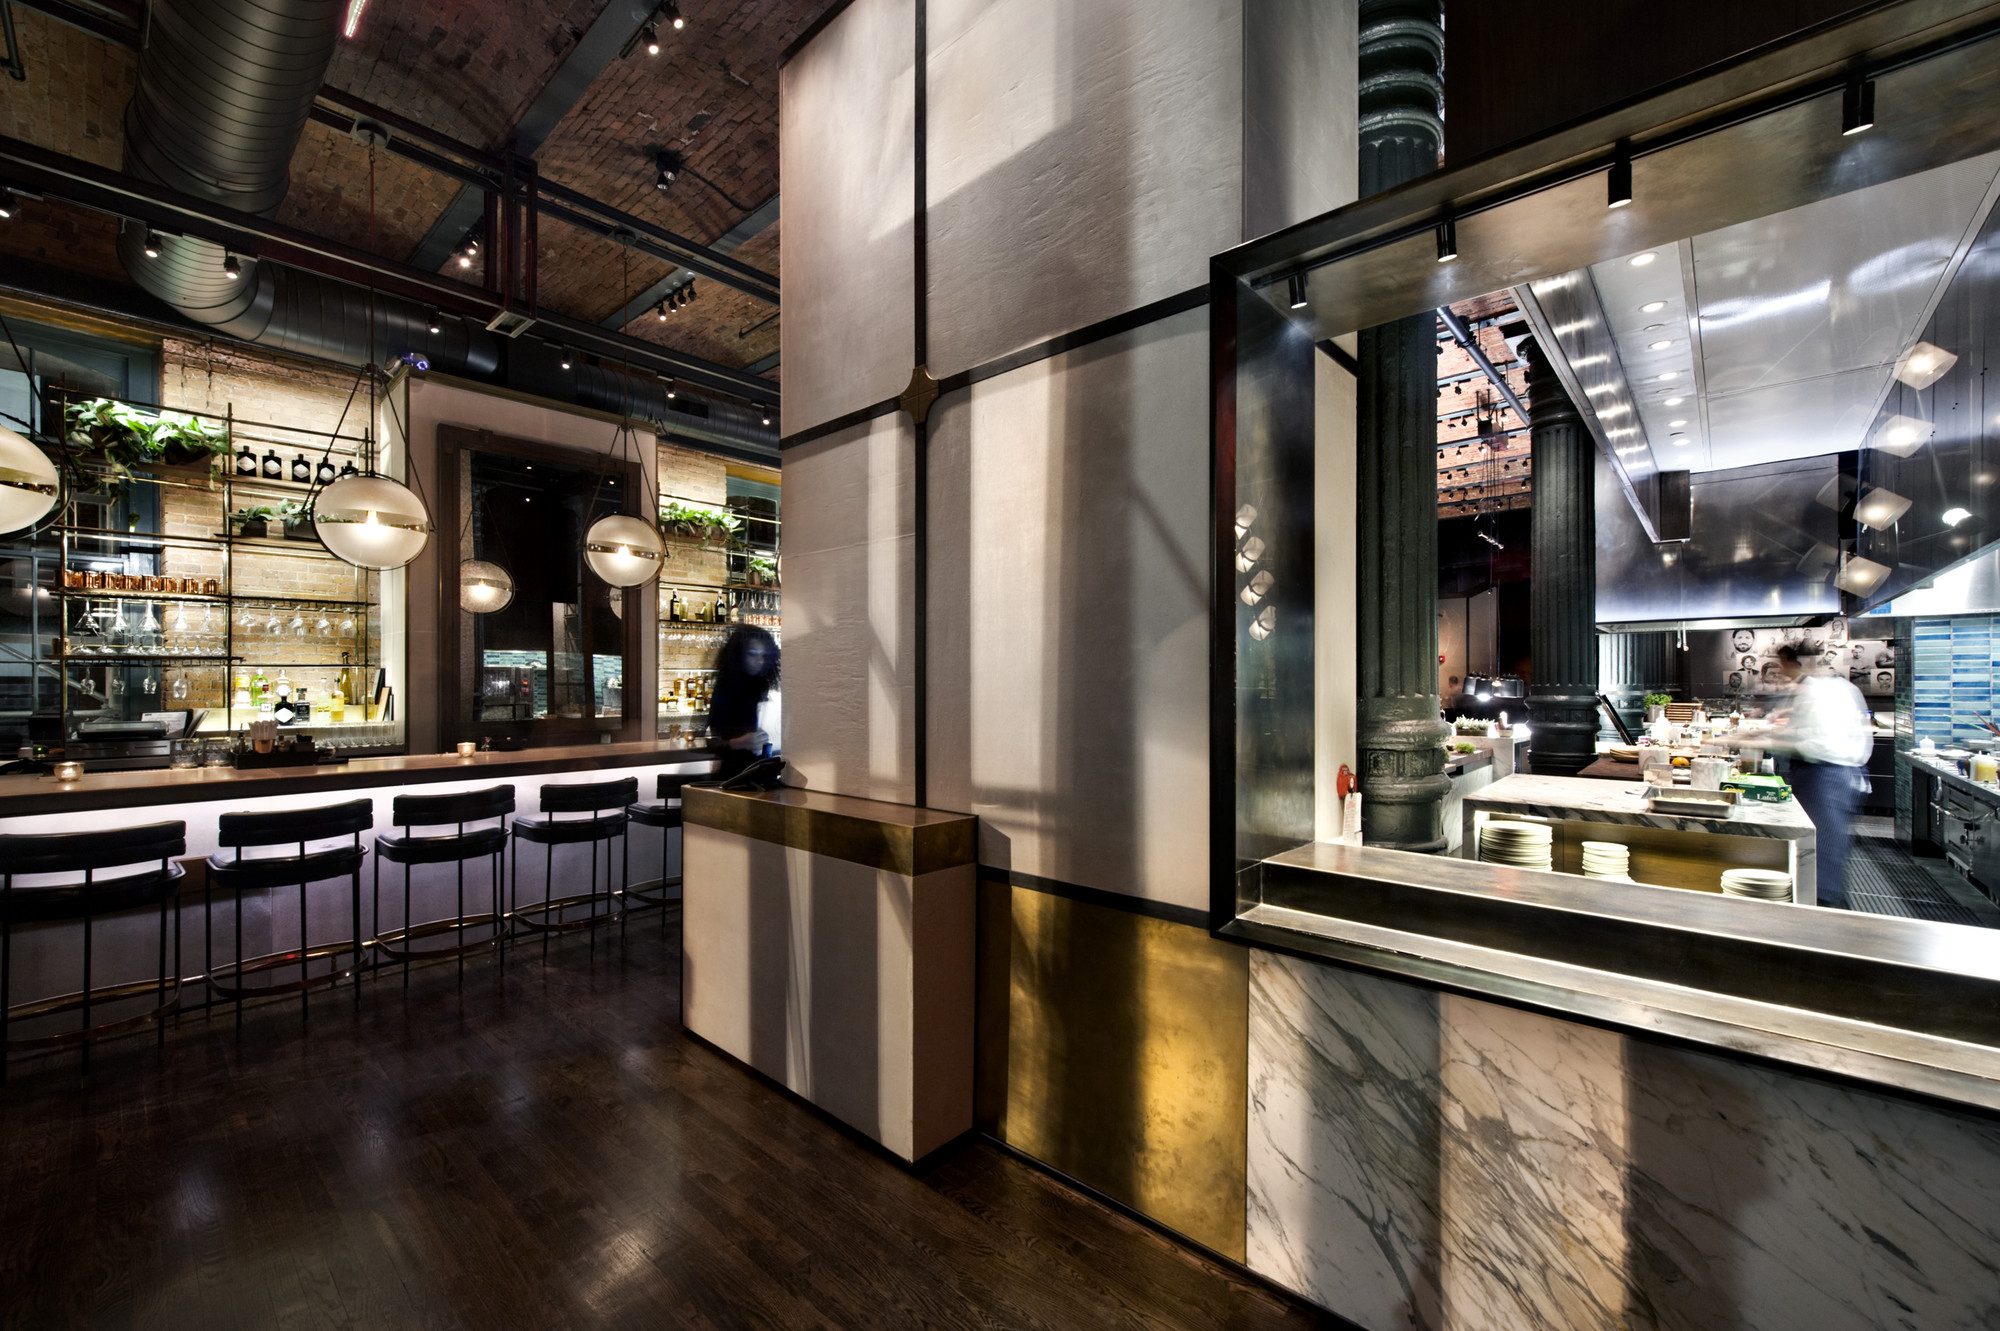 The chefs club by food wine by rockwell group new york for Architecture interior design new york